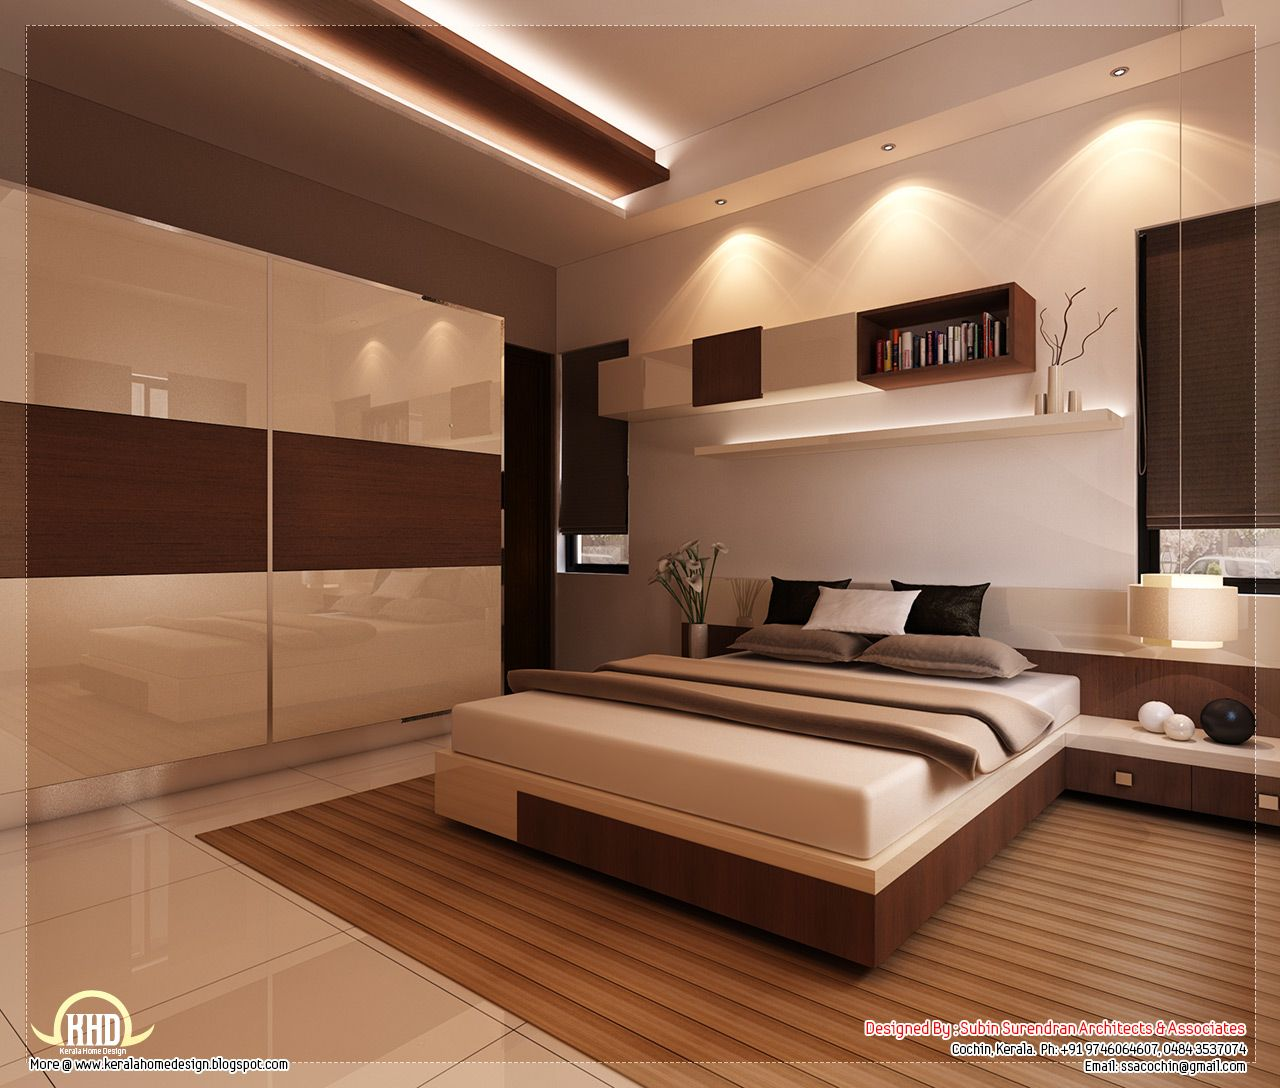 Beautiful home interior designs in 2019 home bedroom - Home interior design images india ...